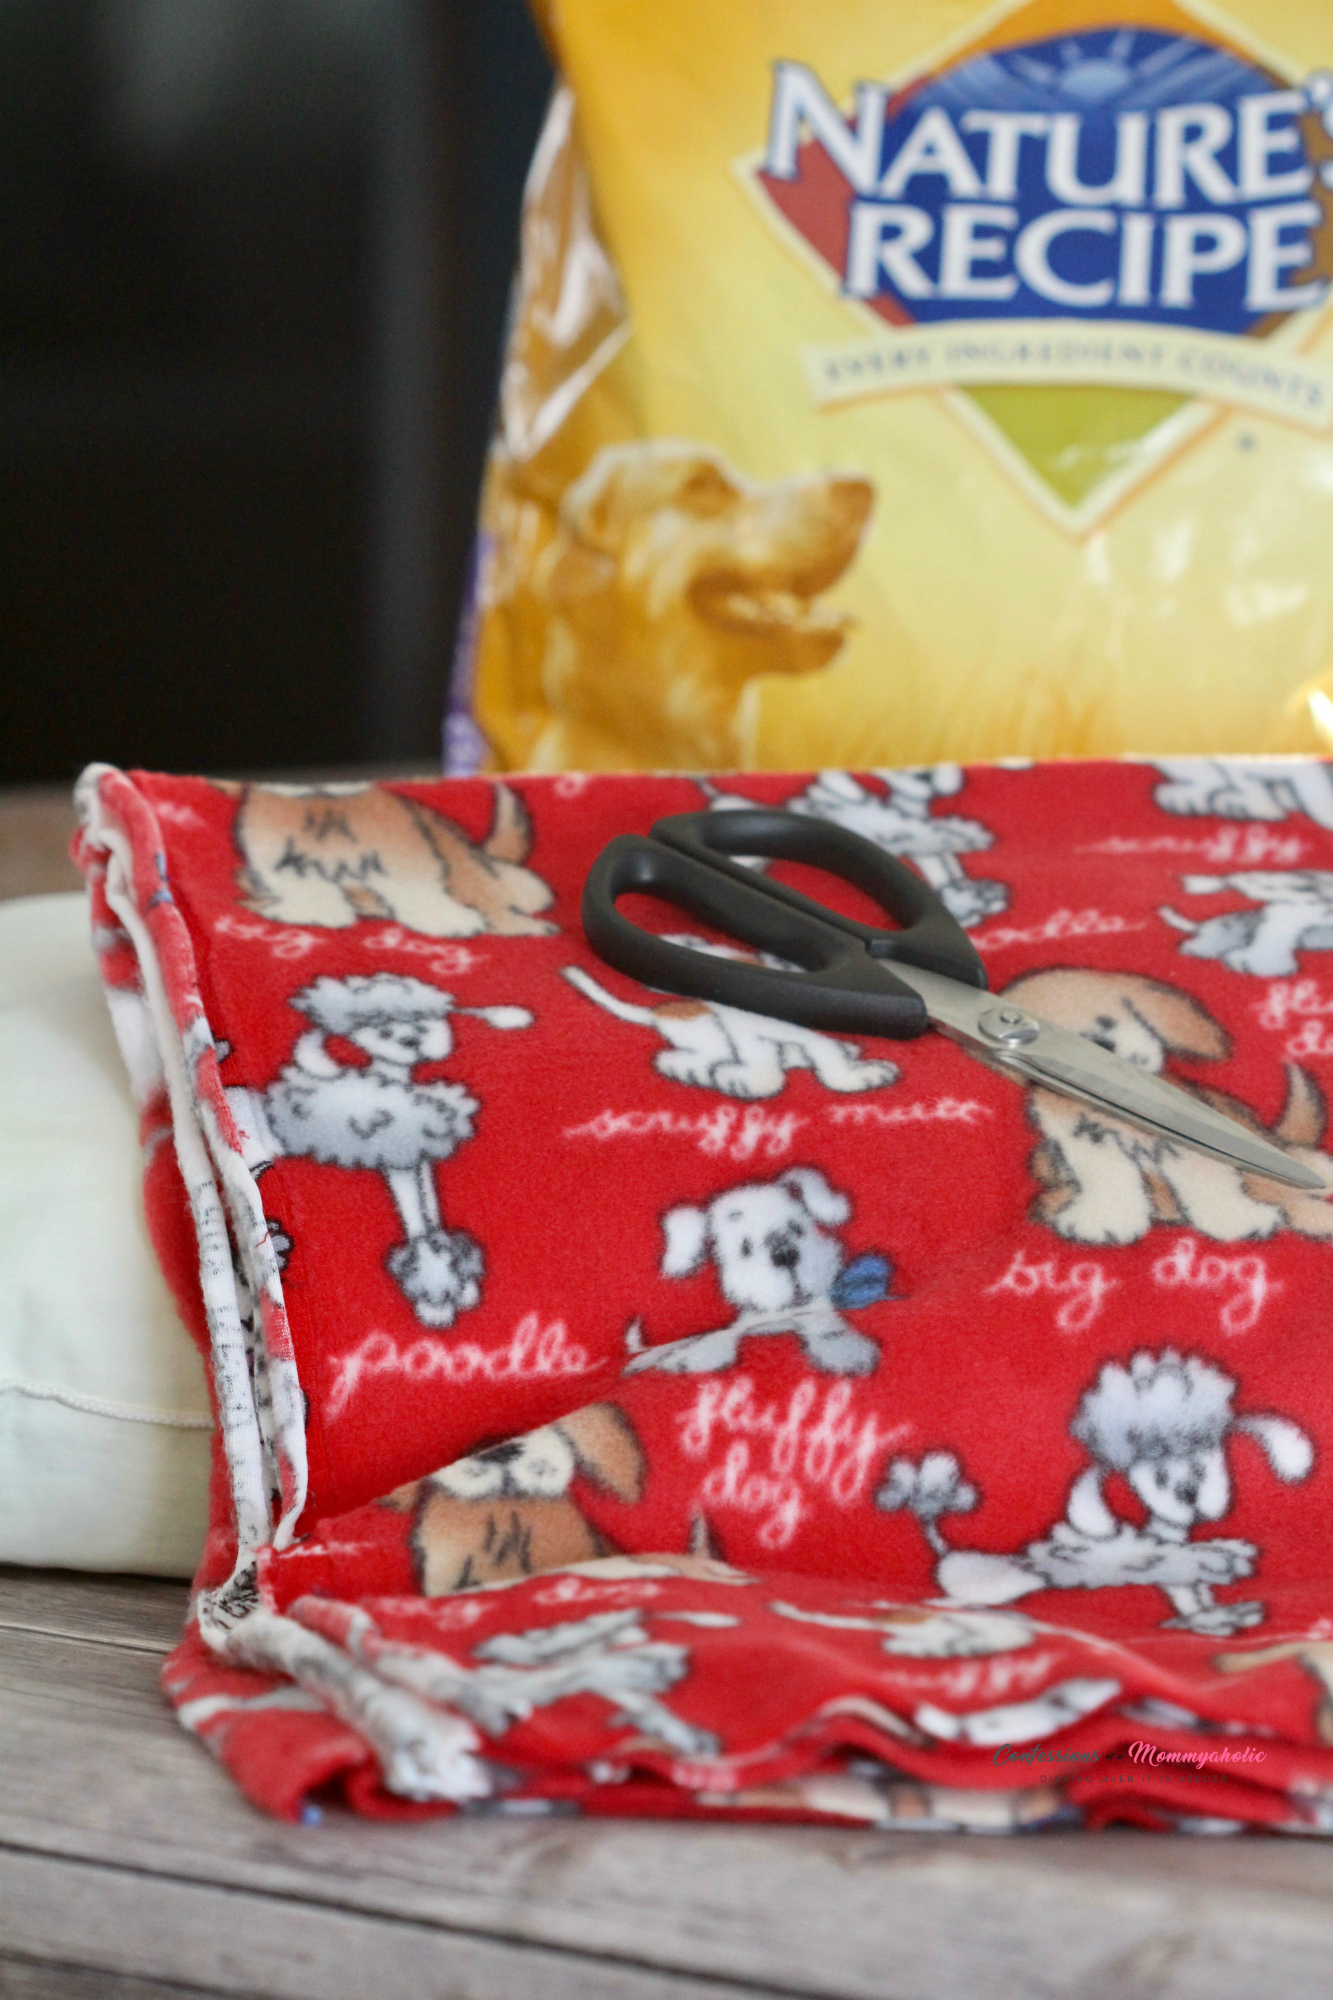 Supplies for DIY Up Cycled No Sew Dog Pillow